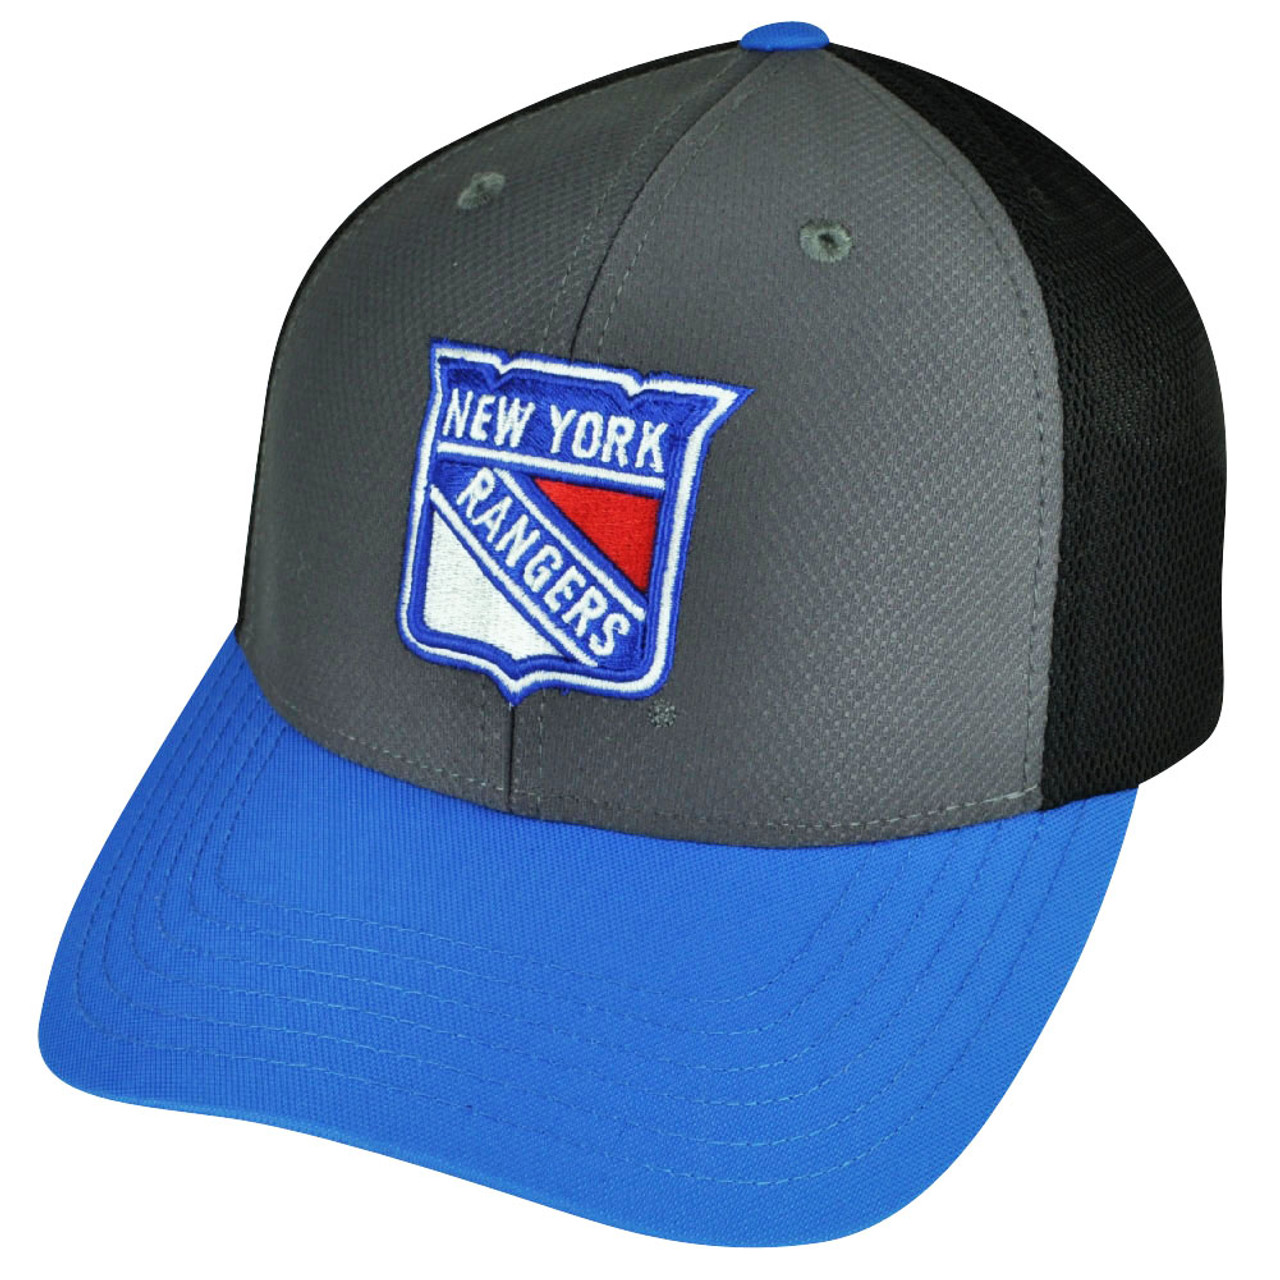 check out e9a55 87c8d NHL American Needle New York Rangers Snapback Hat Cap Gray Blue Breathable  Mesh